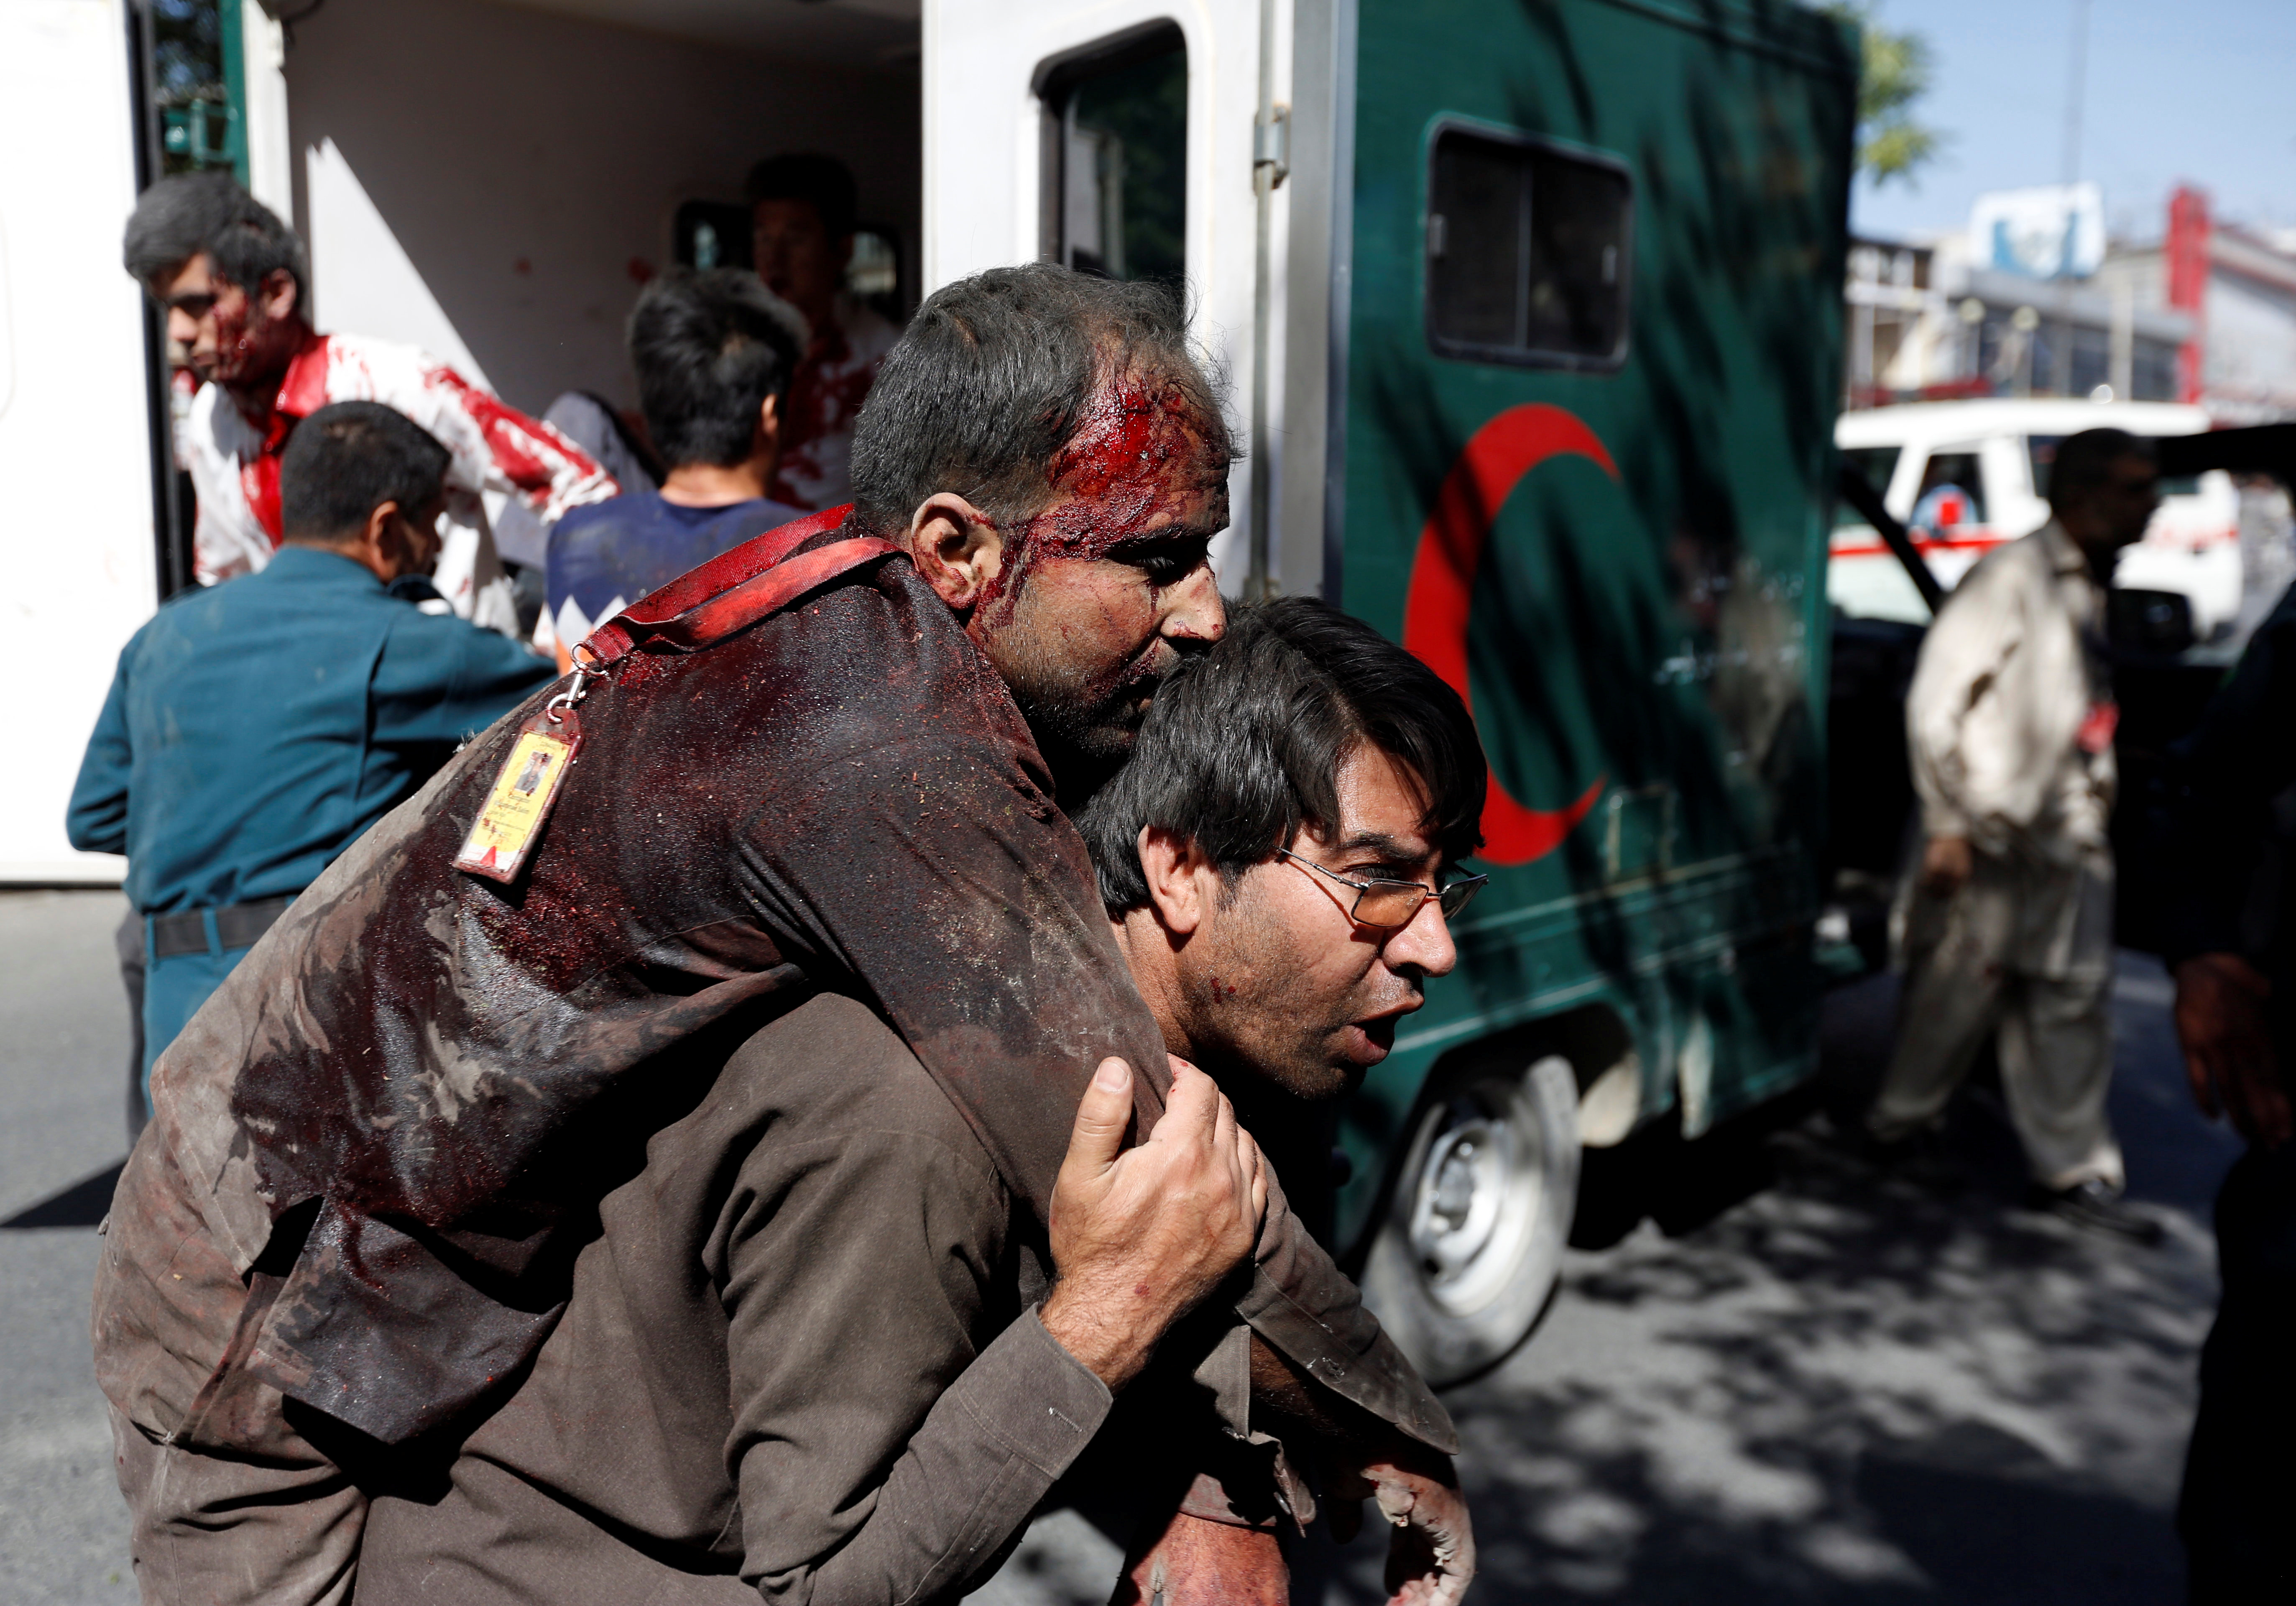 An Afghan man carries an injured man to a hospital after a blast in Kabul, May 31, 2017.